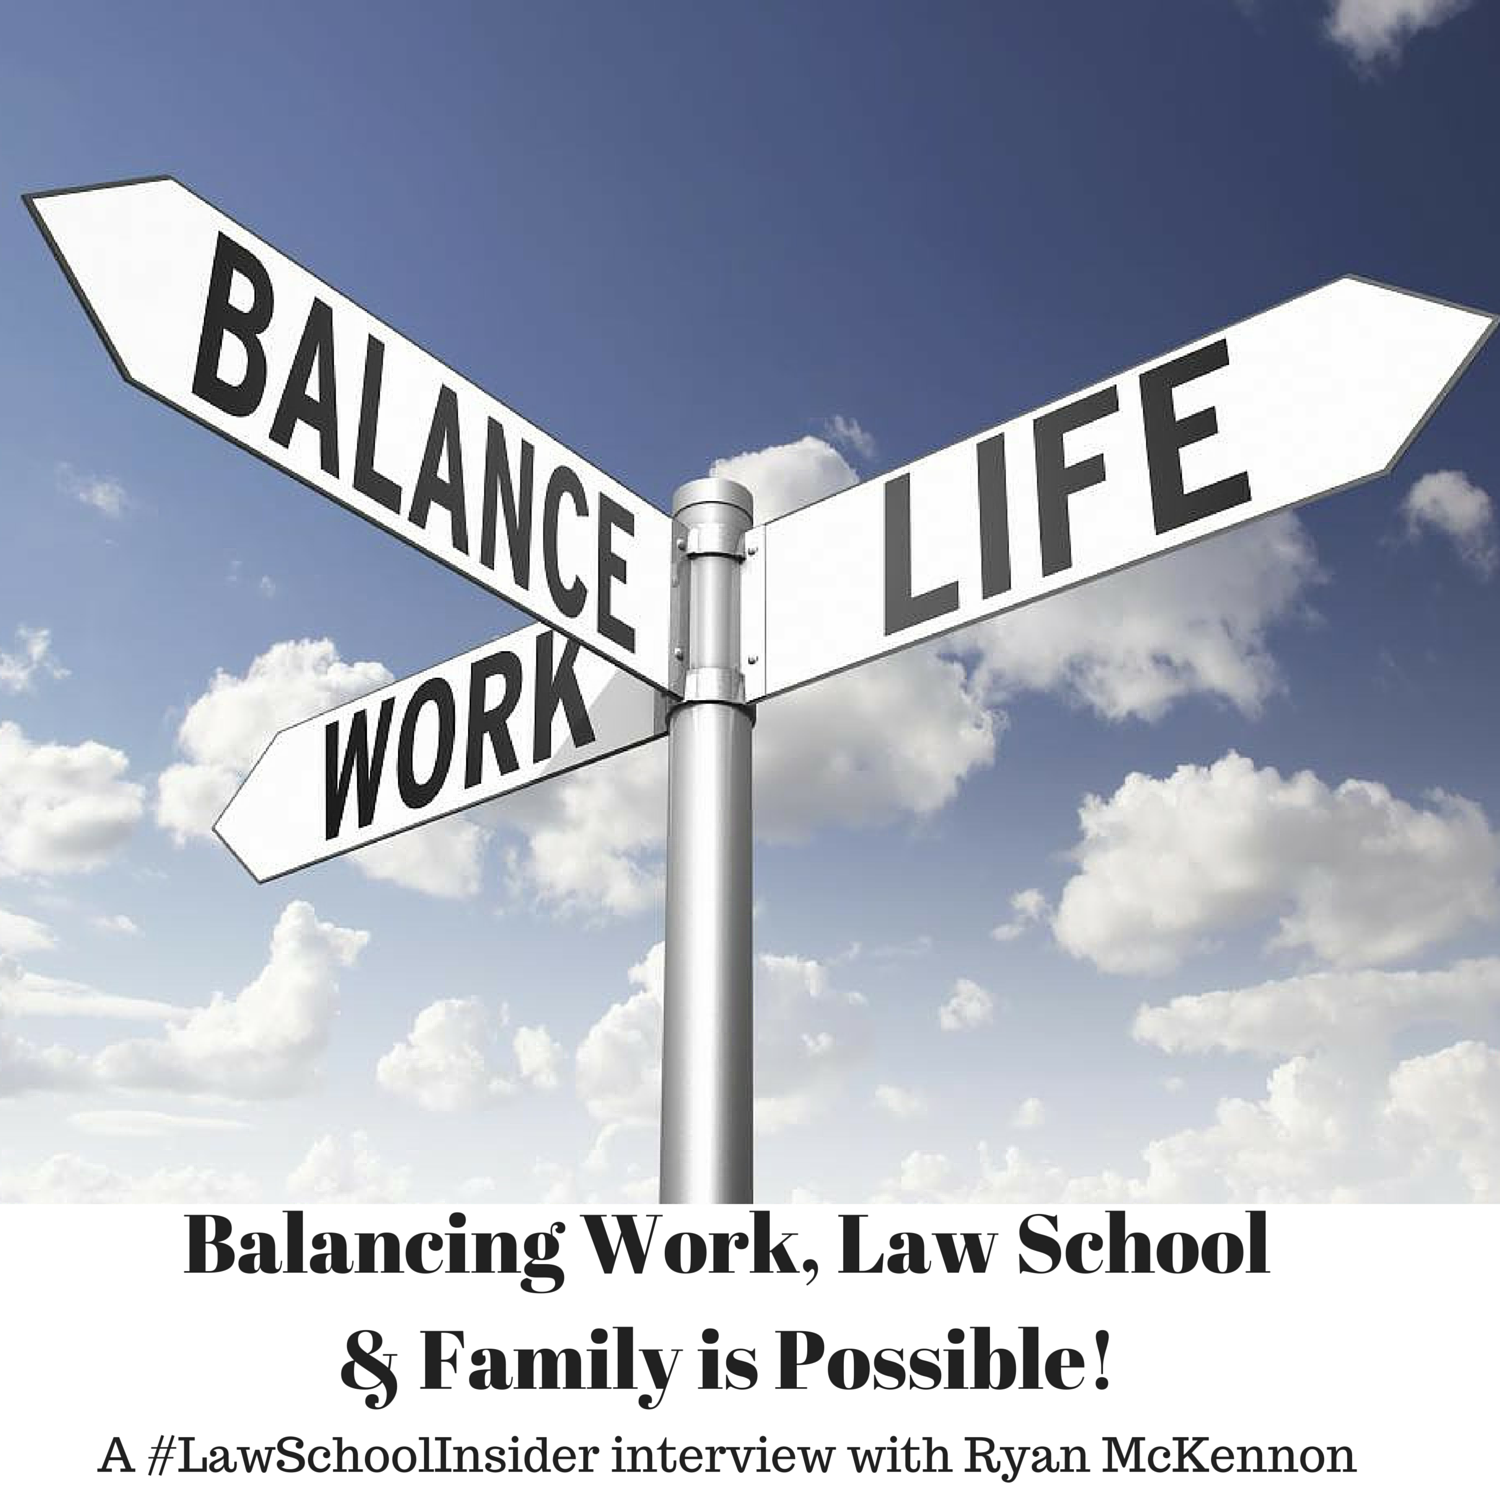 balancing school work and family demands Balancing the demands of academic work and part-time jobs, extra-curricular  activities, family and leisure can be challenging finding  if you are trying to find  a balance with your school, work and life commitments, talk to one of our study.